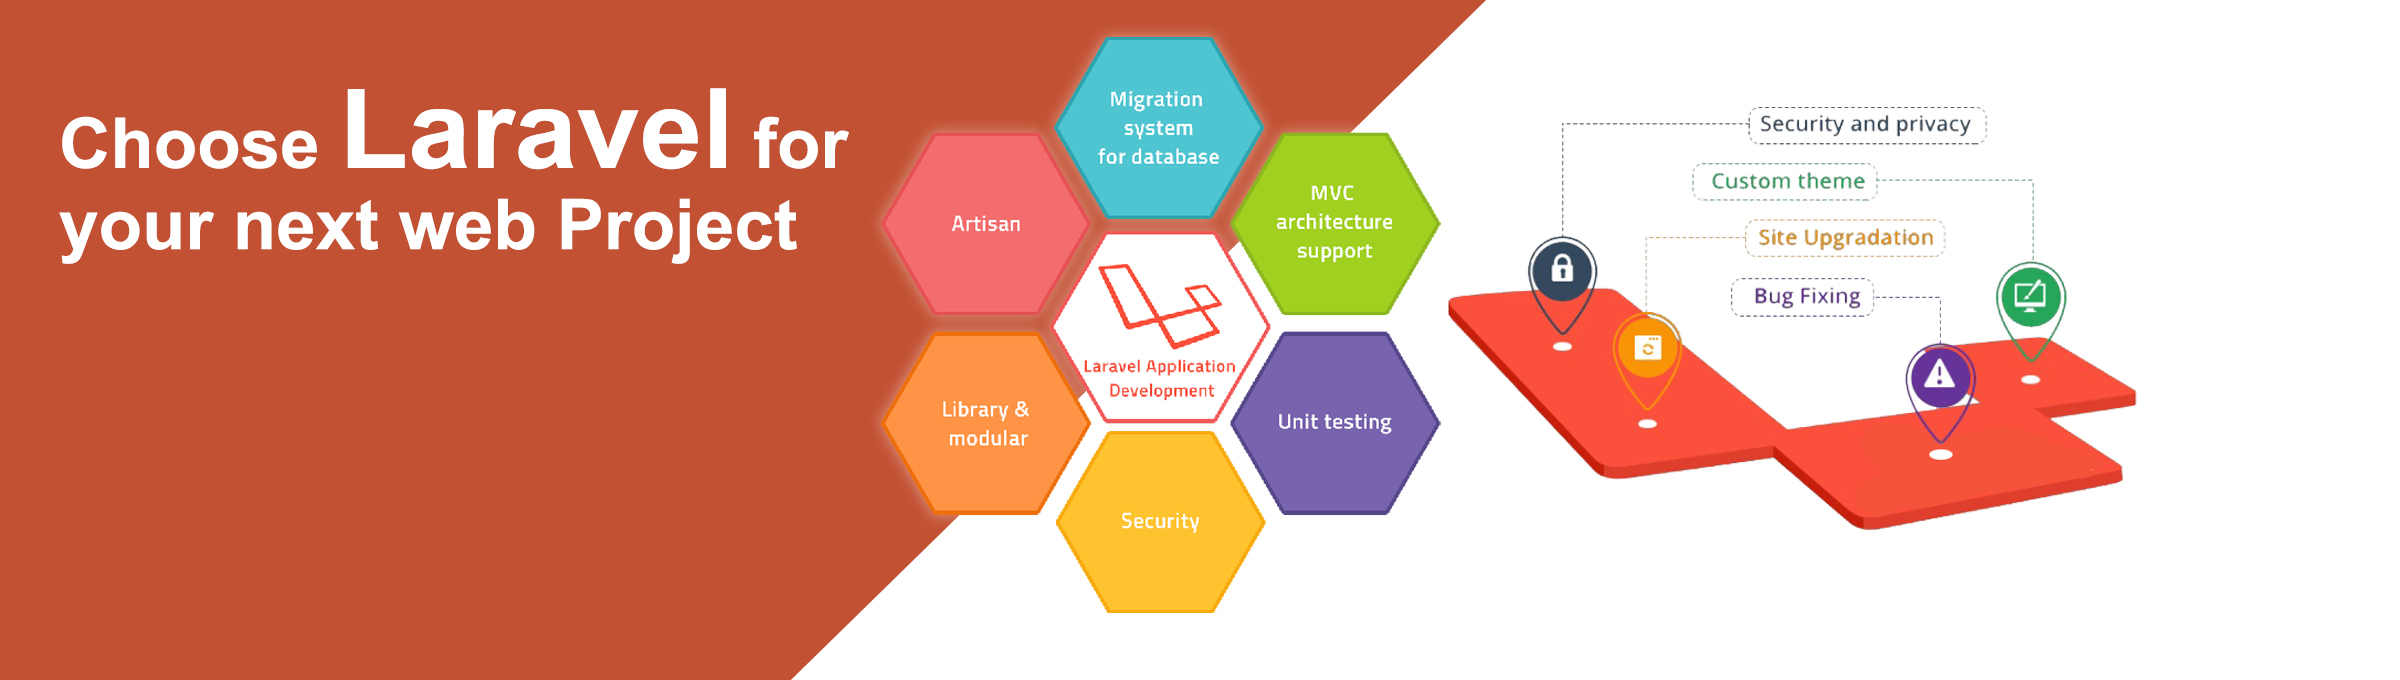 Why should you choose Laravel for your next web project?